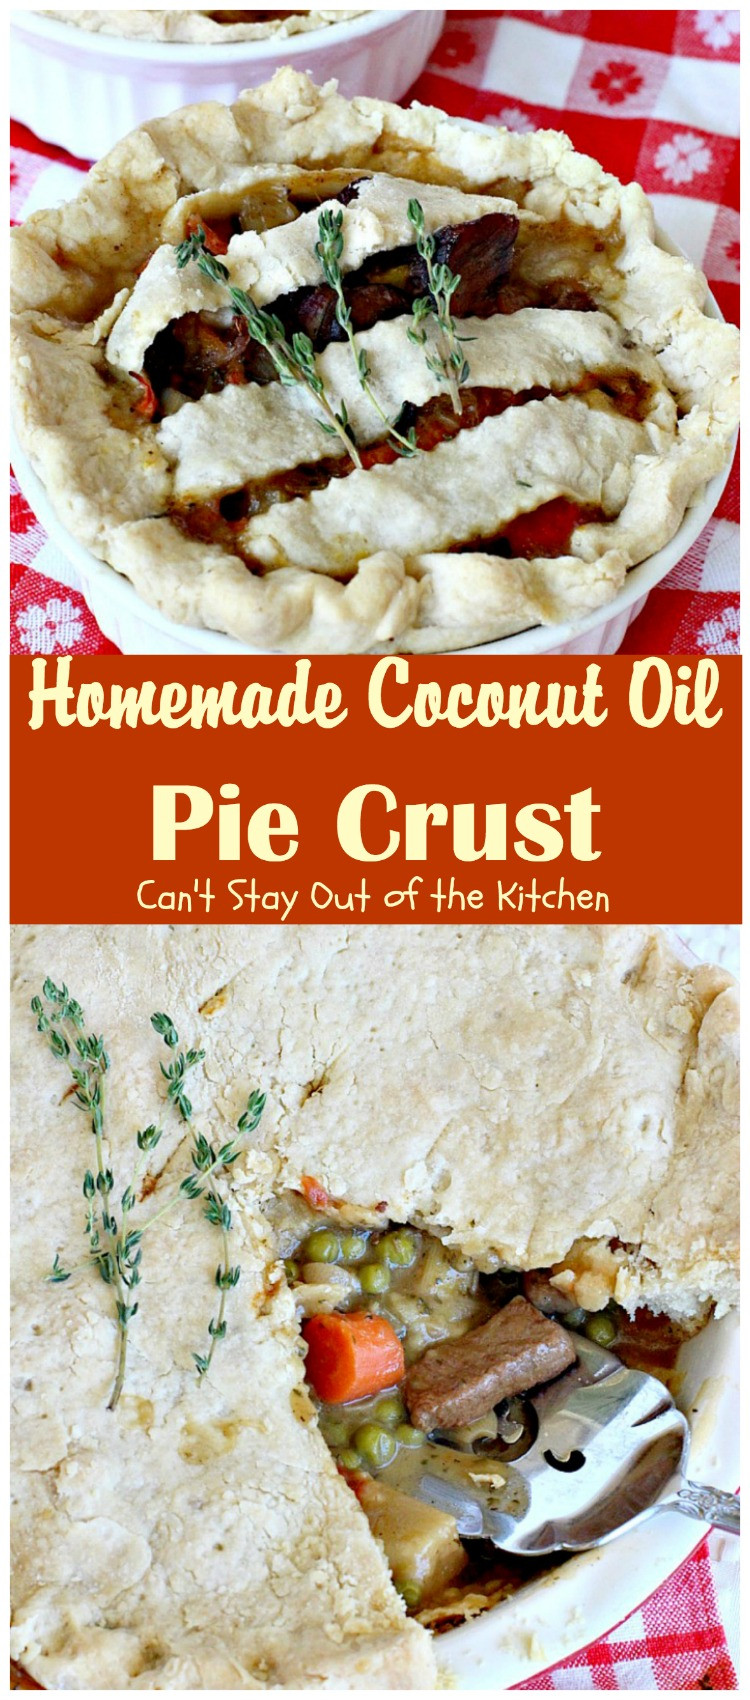 Coconut Oil Pie Crust  Homemade Coconut Oil Pie Crust Can t Stay Out of the Kitchen